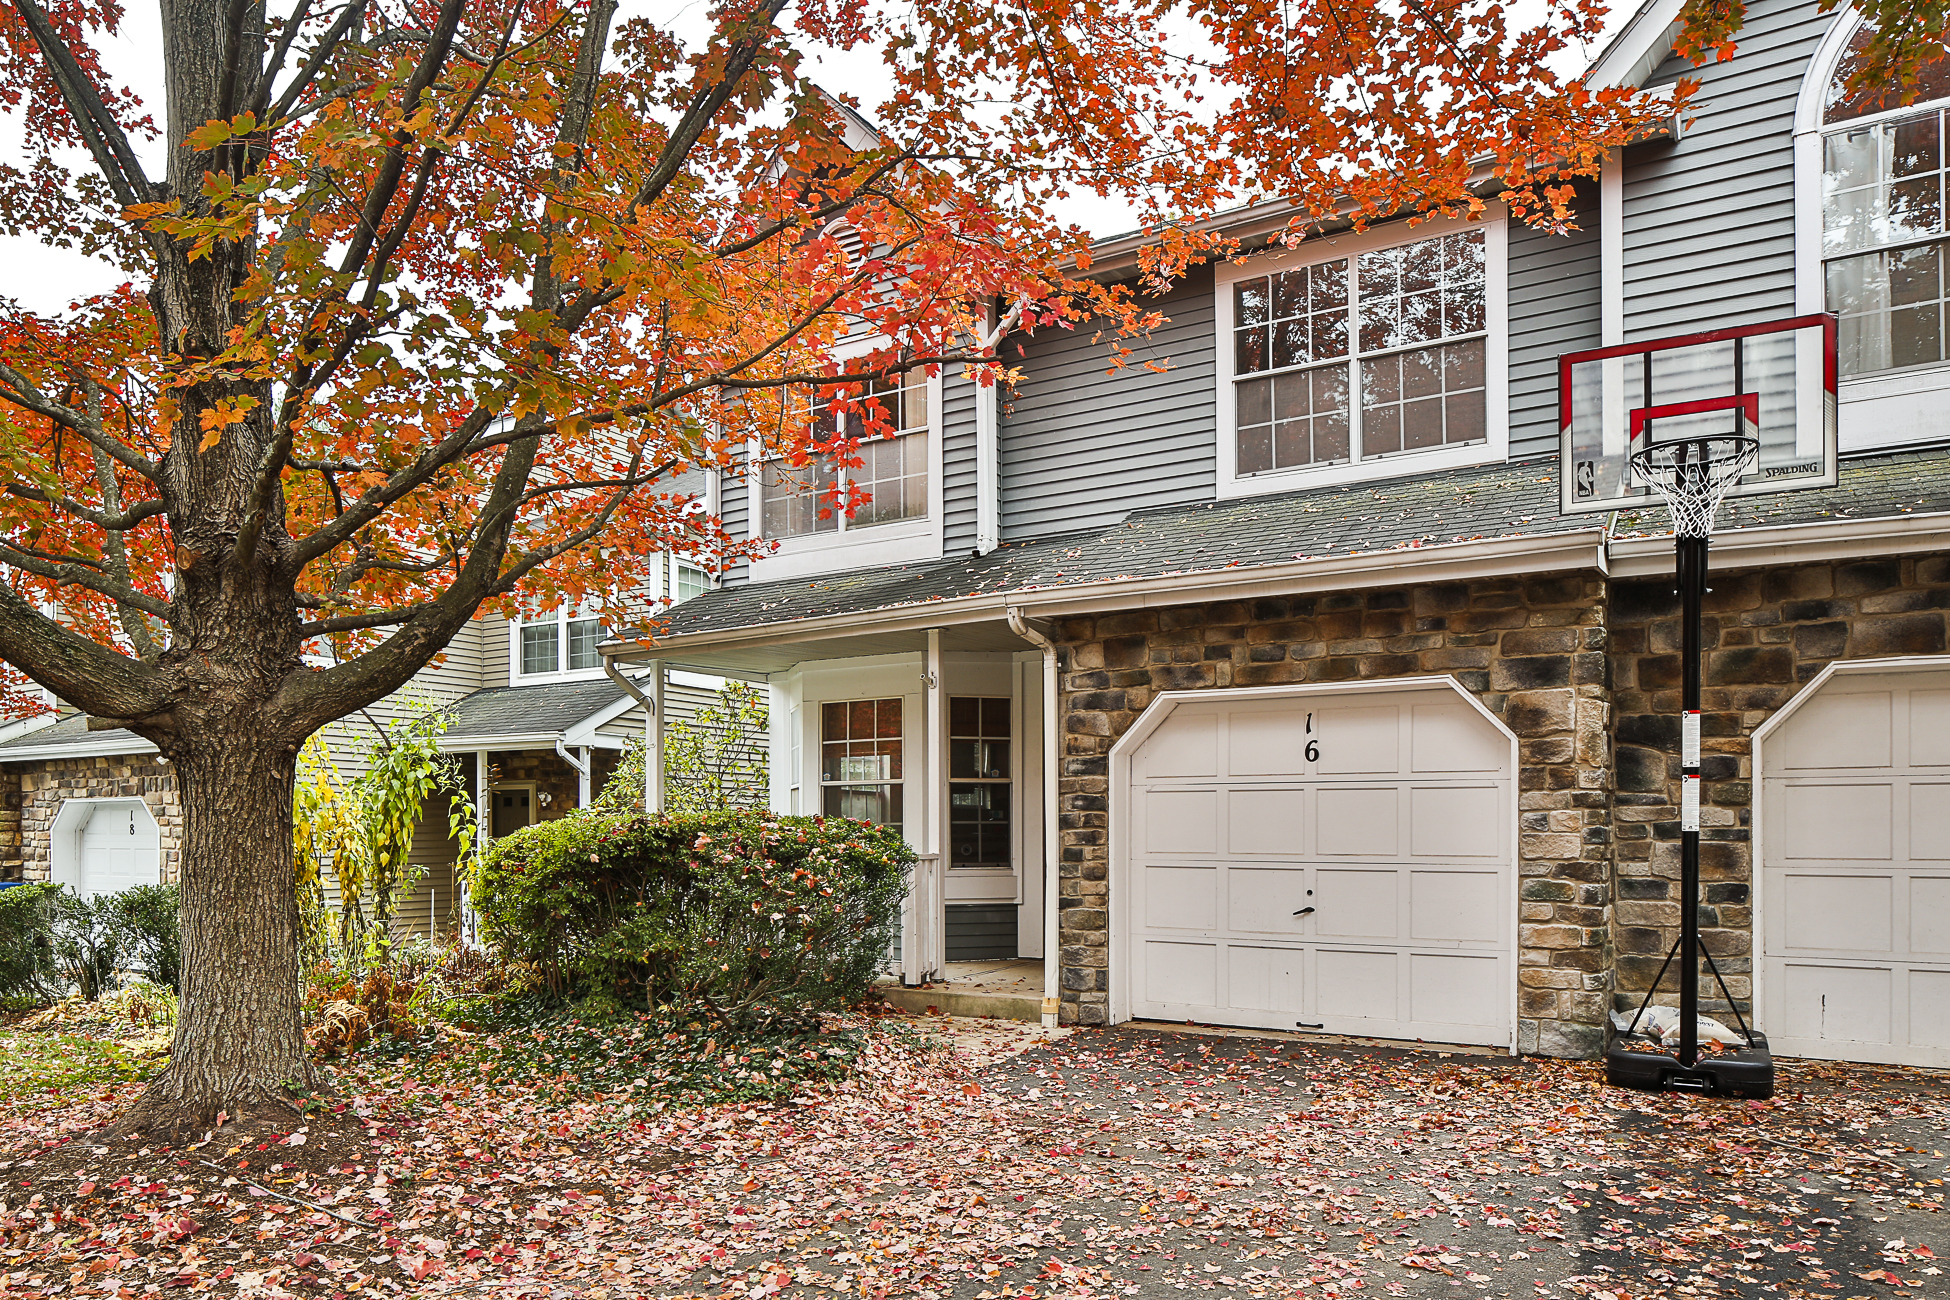 Property For Sale at Turn-Key Living in Historic Lawrenceville - Lawrence Township